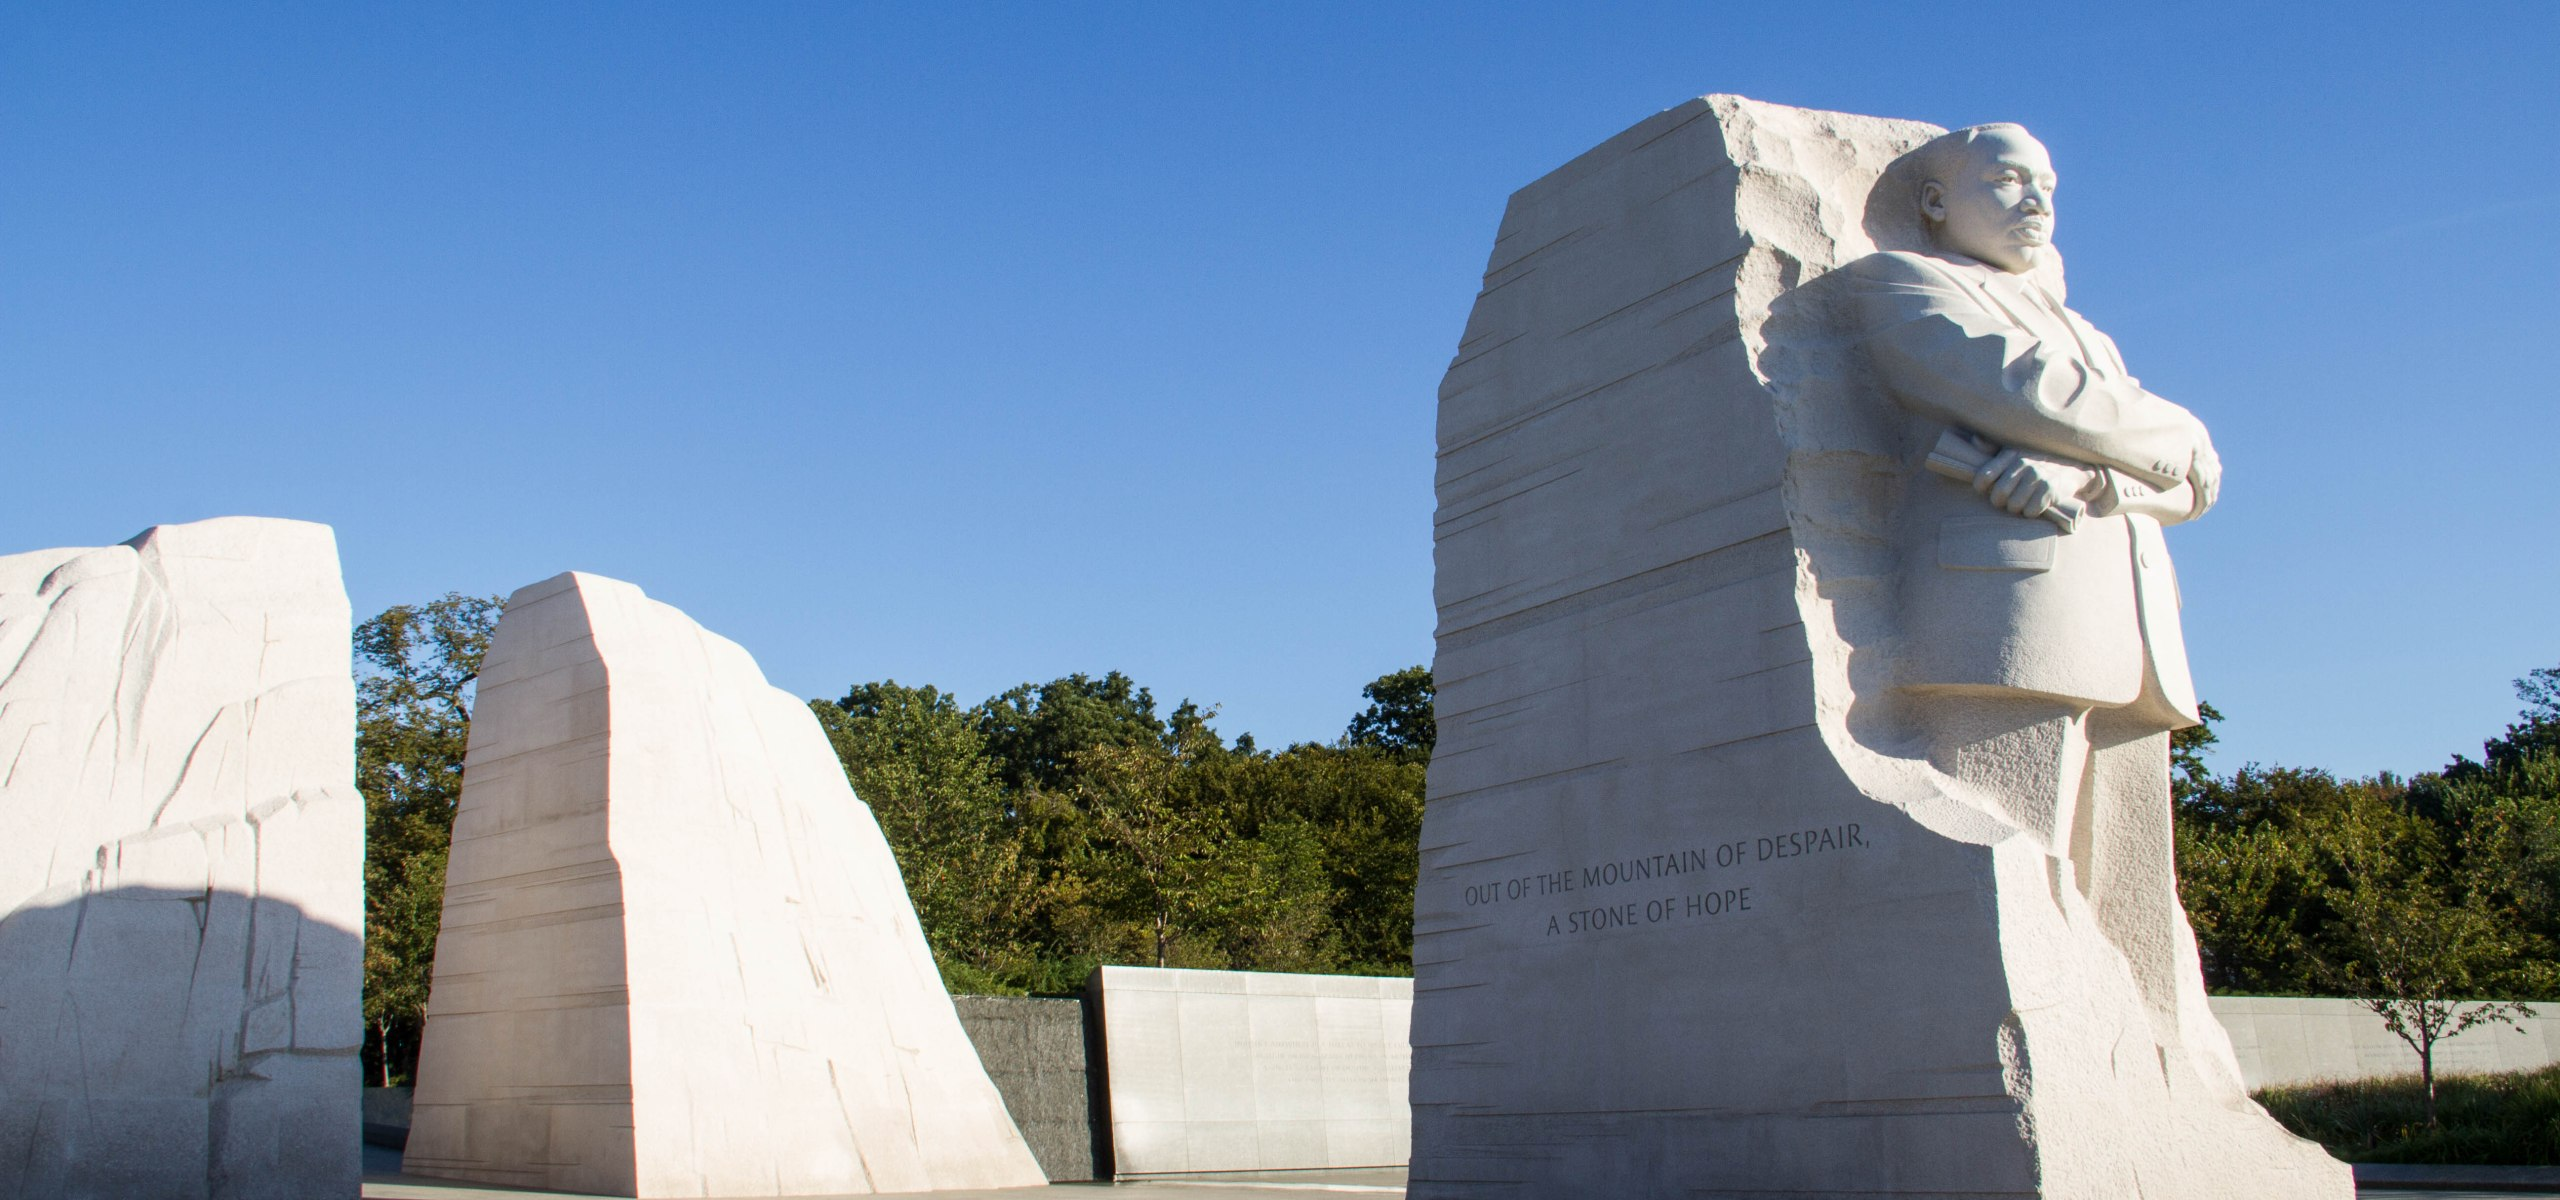 In remembrance of Rev. Dr. Martin Luther King, Jr. the Washington D.C. memorial